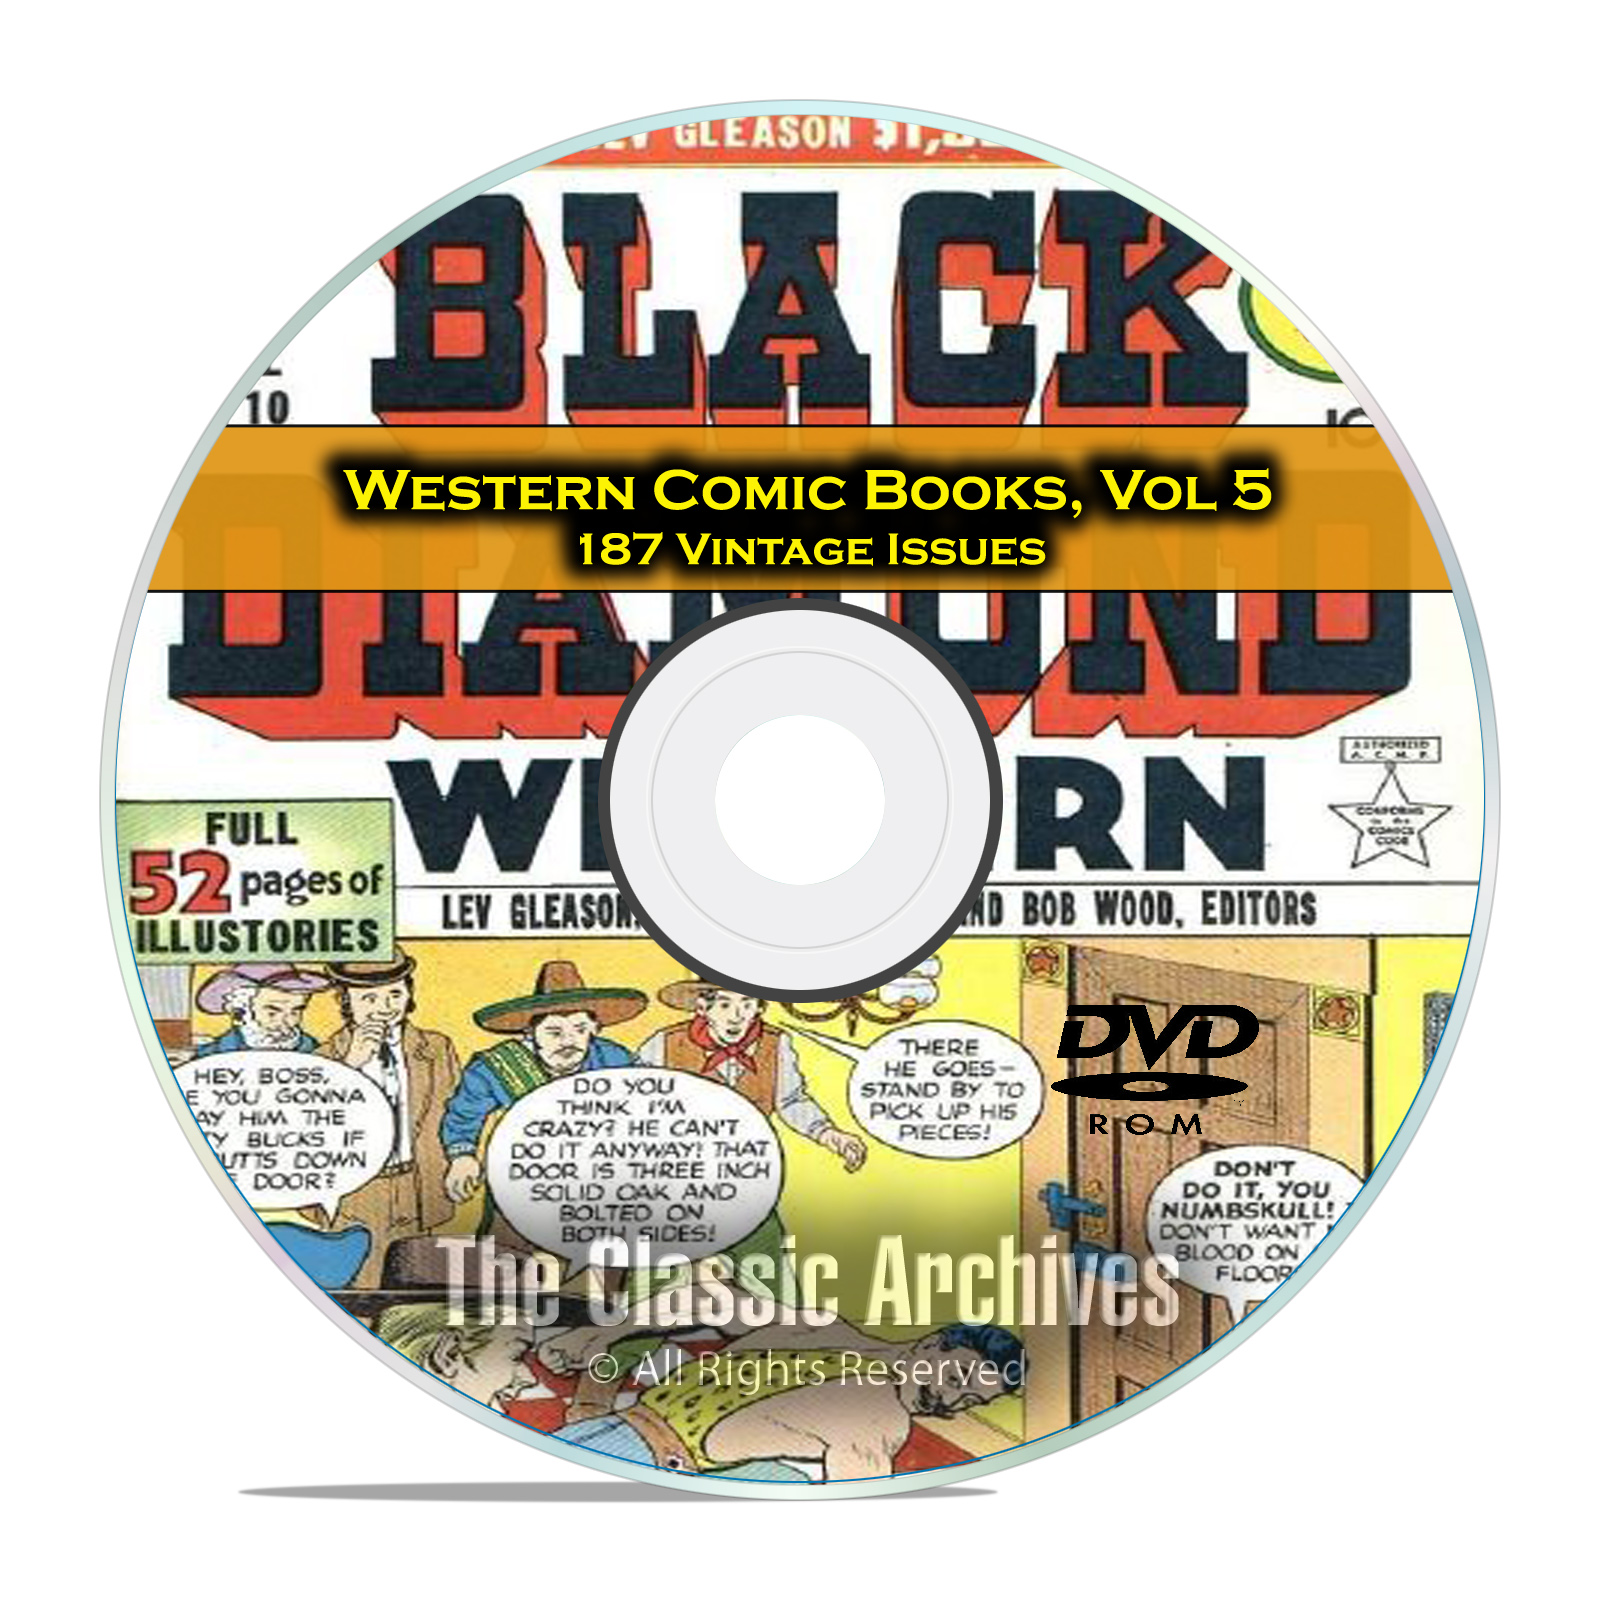 Western Comic Books, Vol 5, Black Diamond, Gunsmoke Dead Eye Golden Age DVD